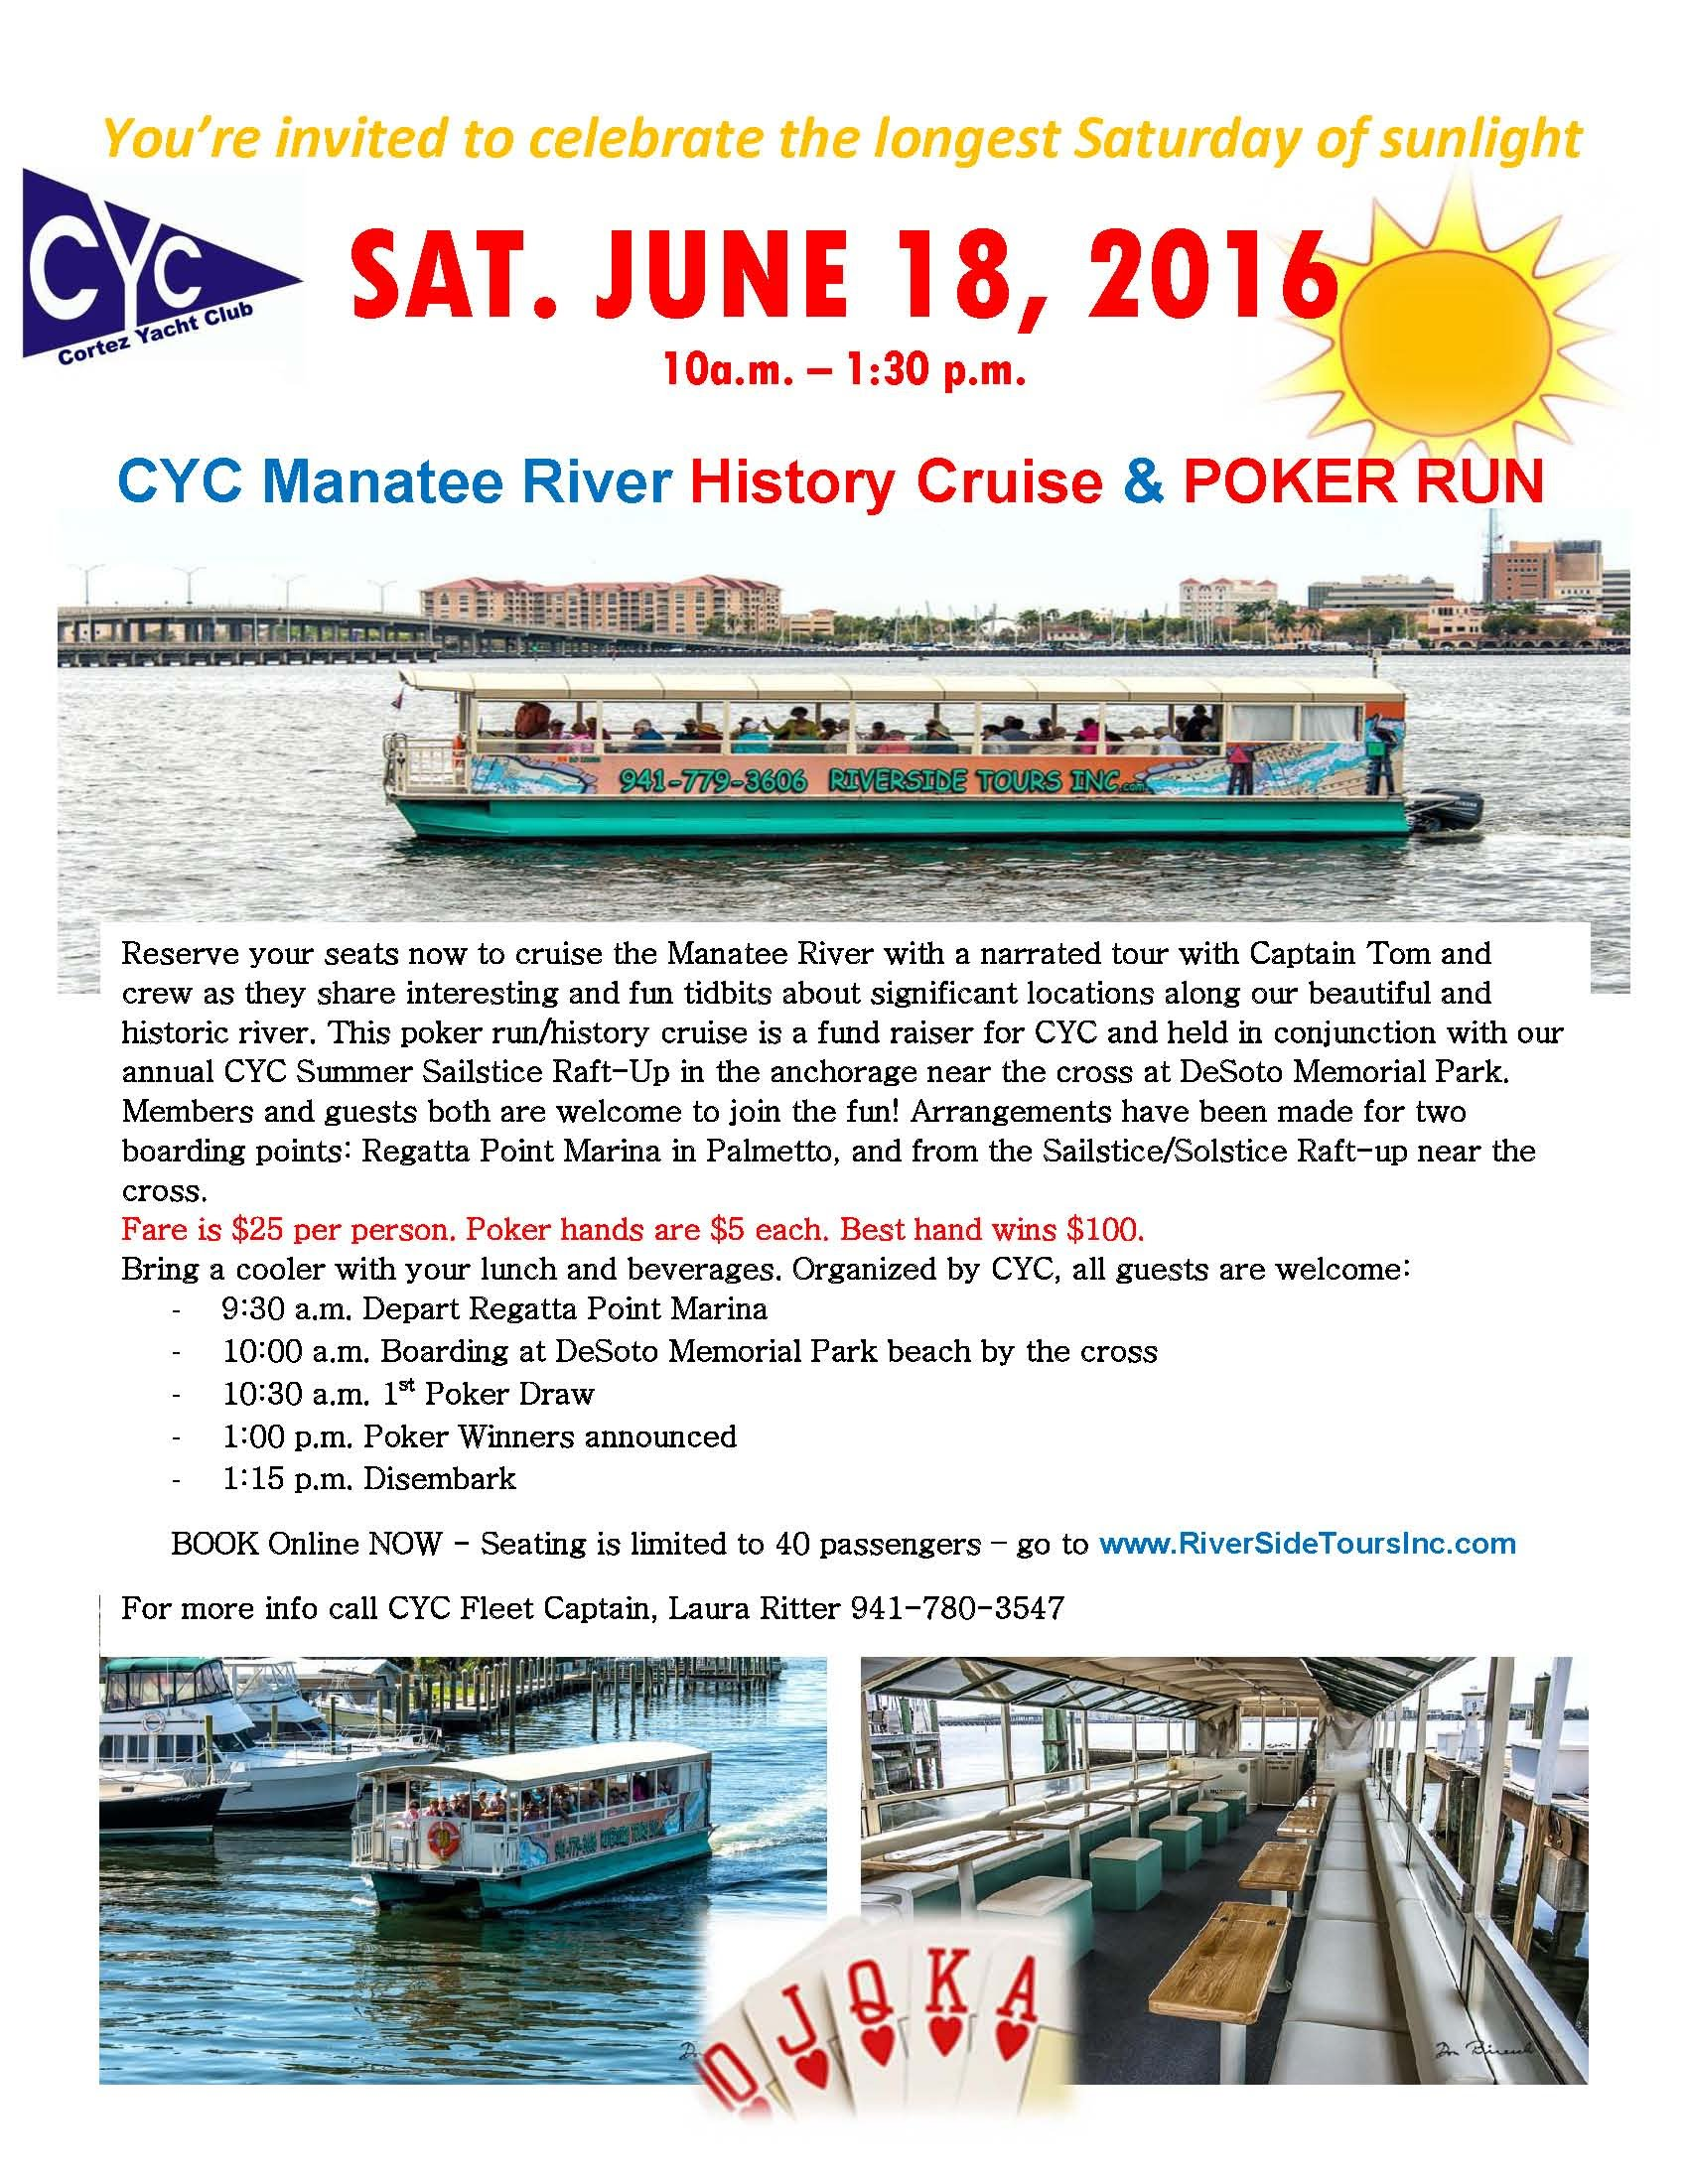 SIGN-UP NOW for RIVER CRUISE Fundraiser Sat. June 18